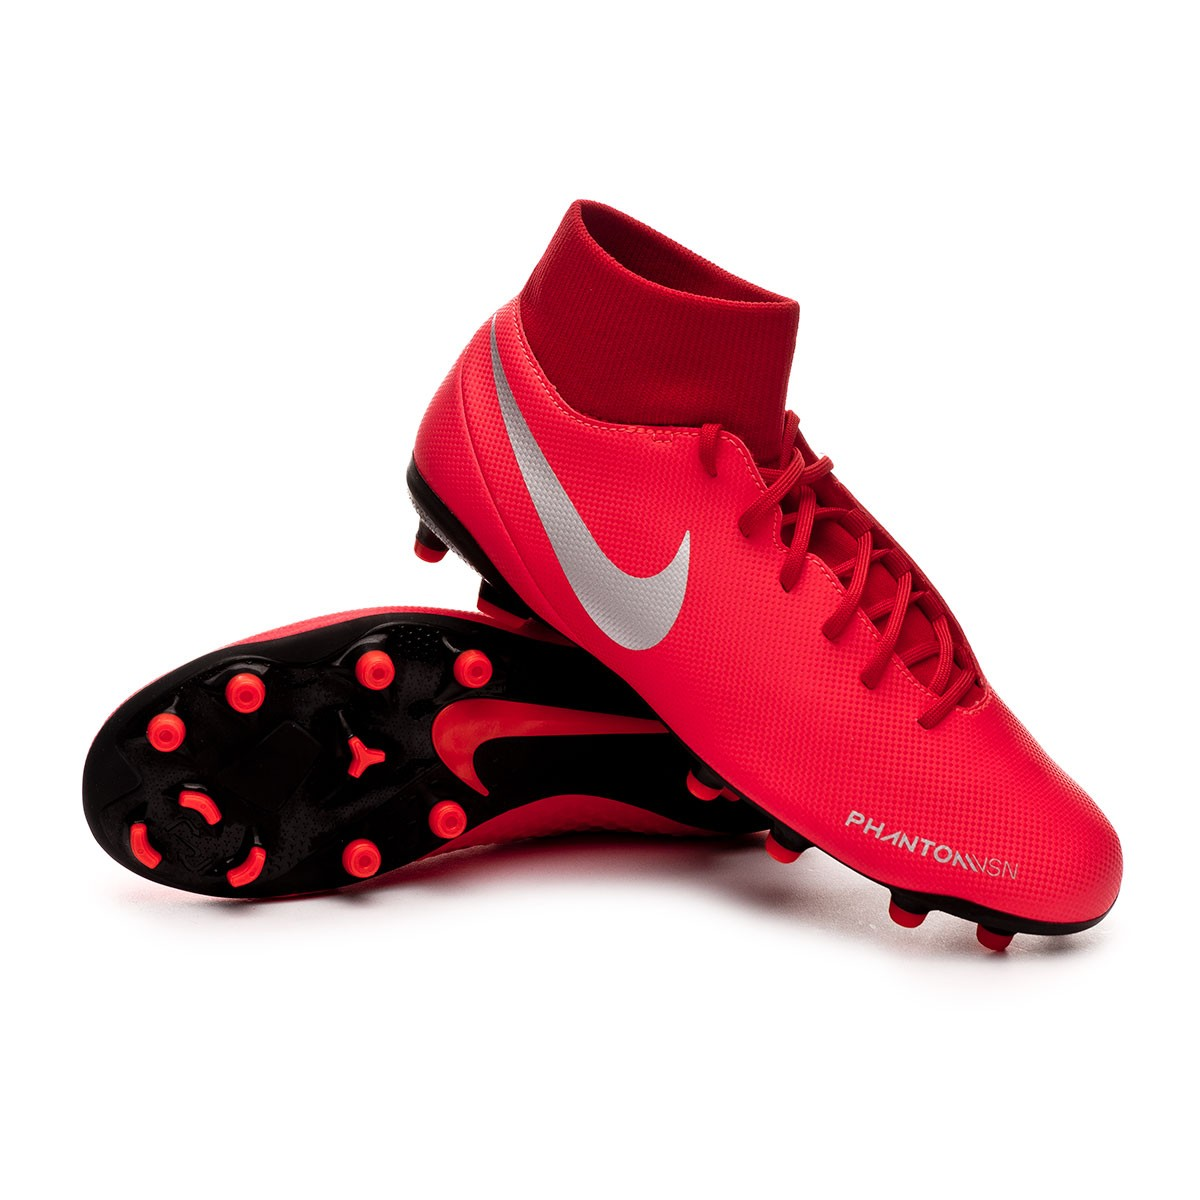 61726d20d81ea Football Boots Nike Phantom Vision Club DF FG MG Bright crimson ...